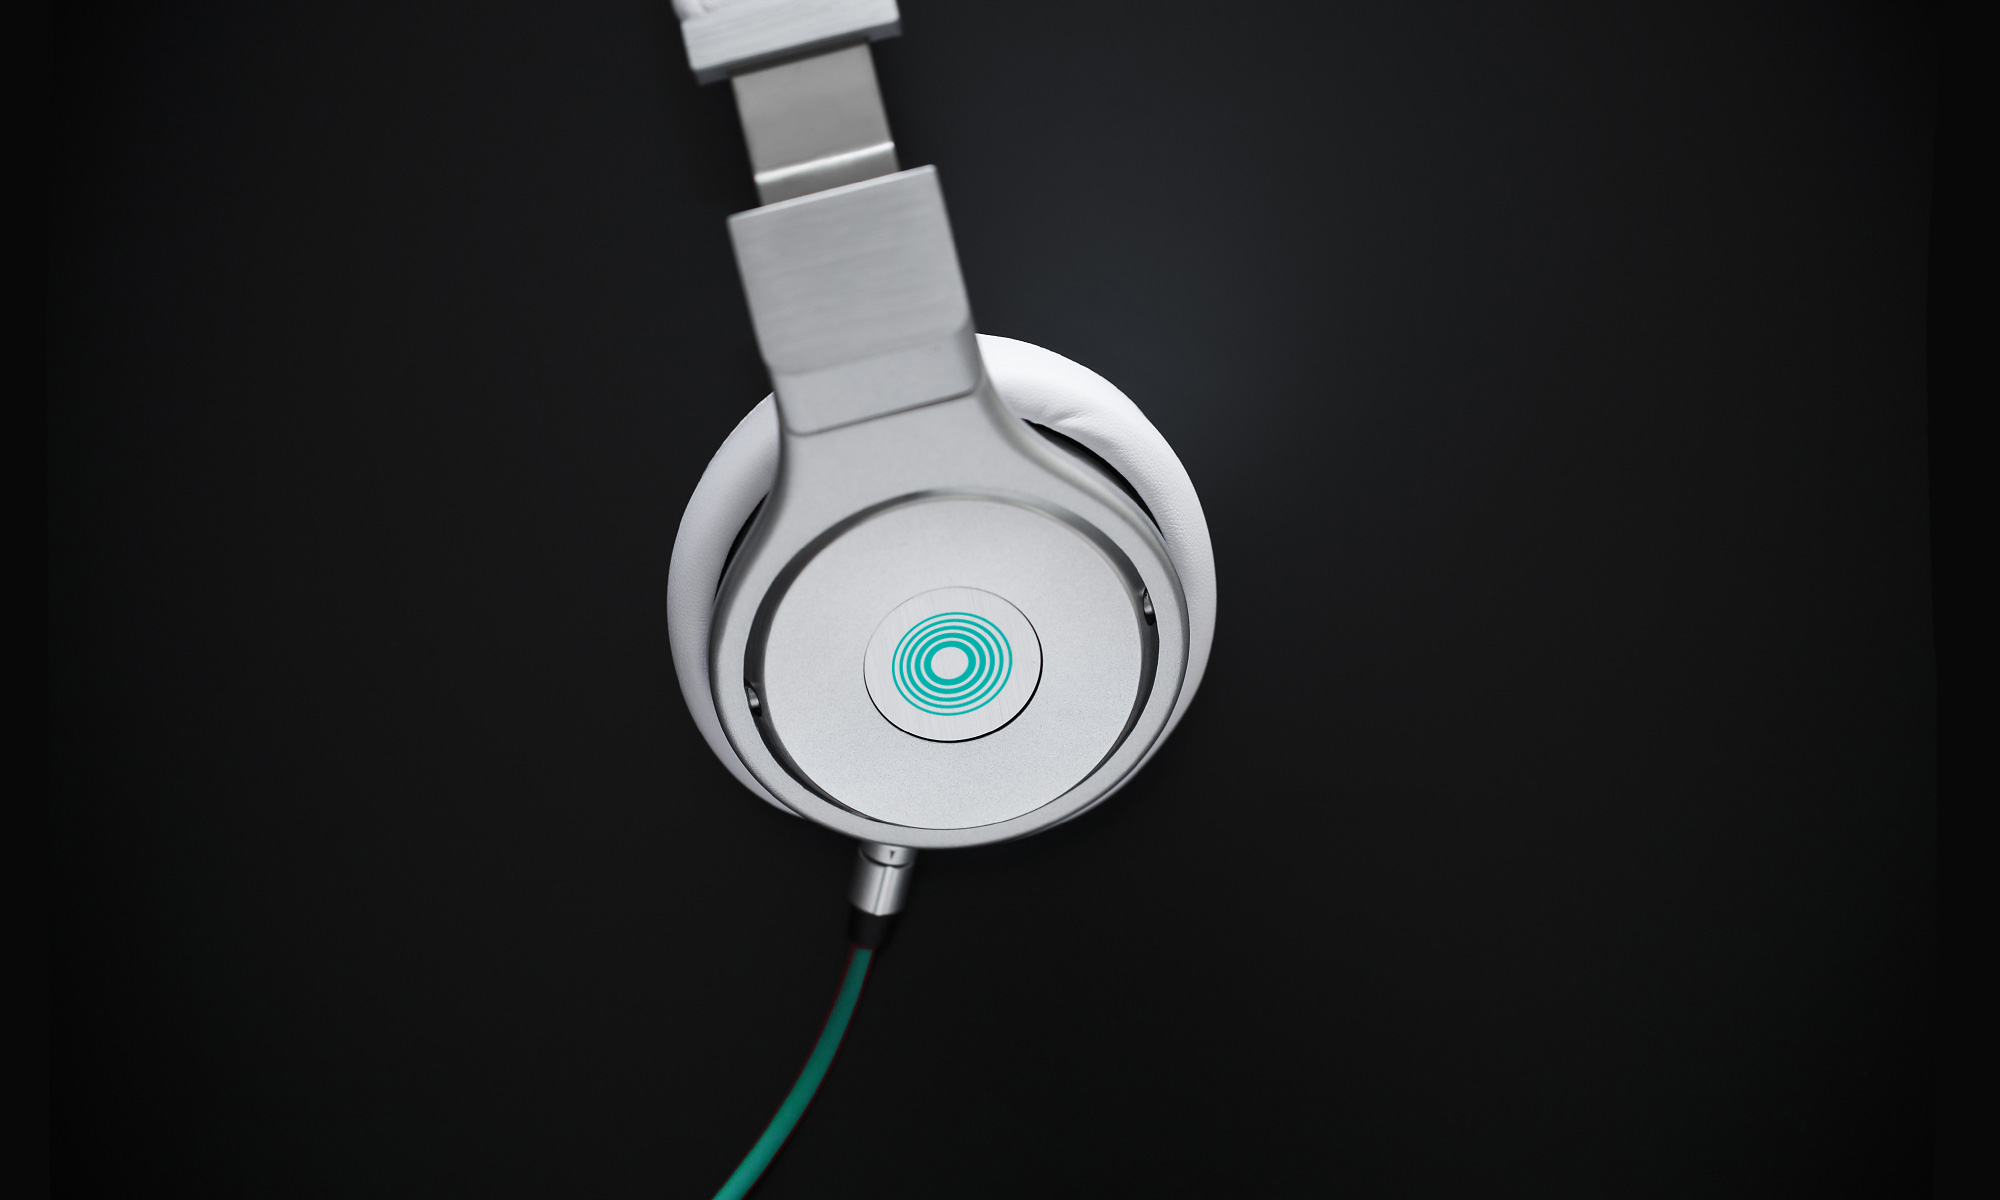 Tunelinks logo on headphones